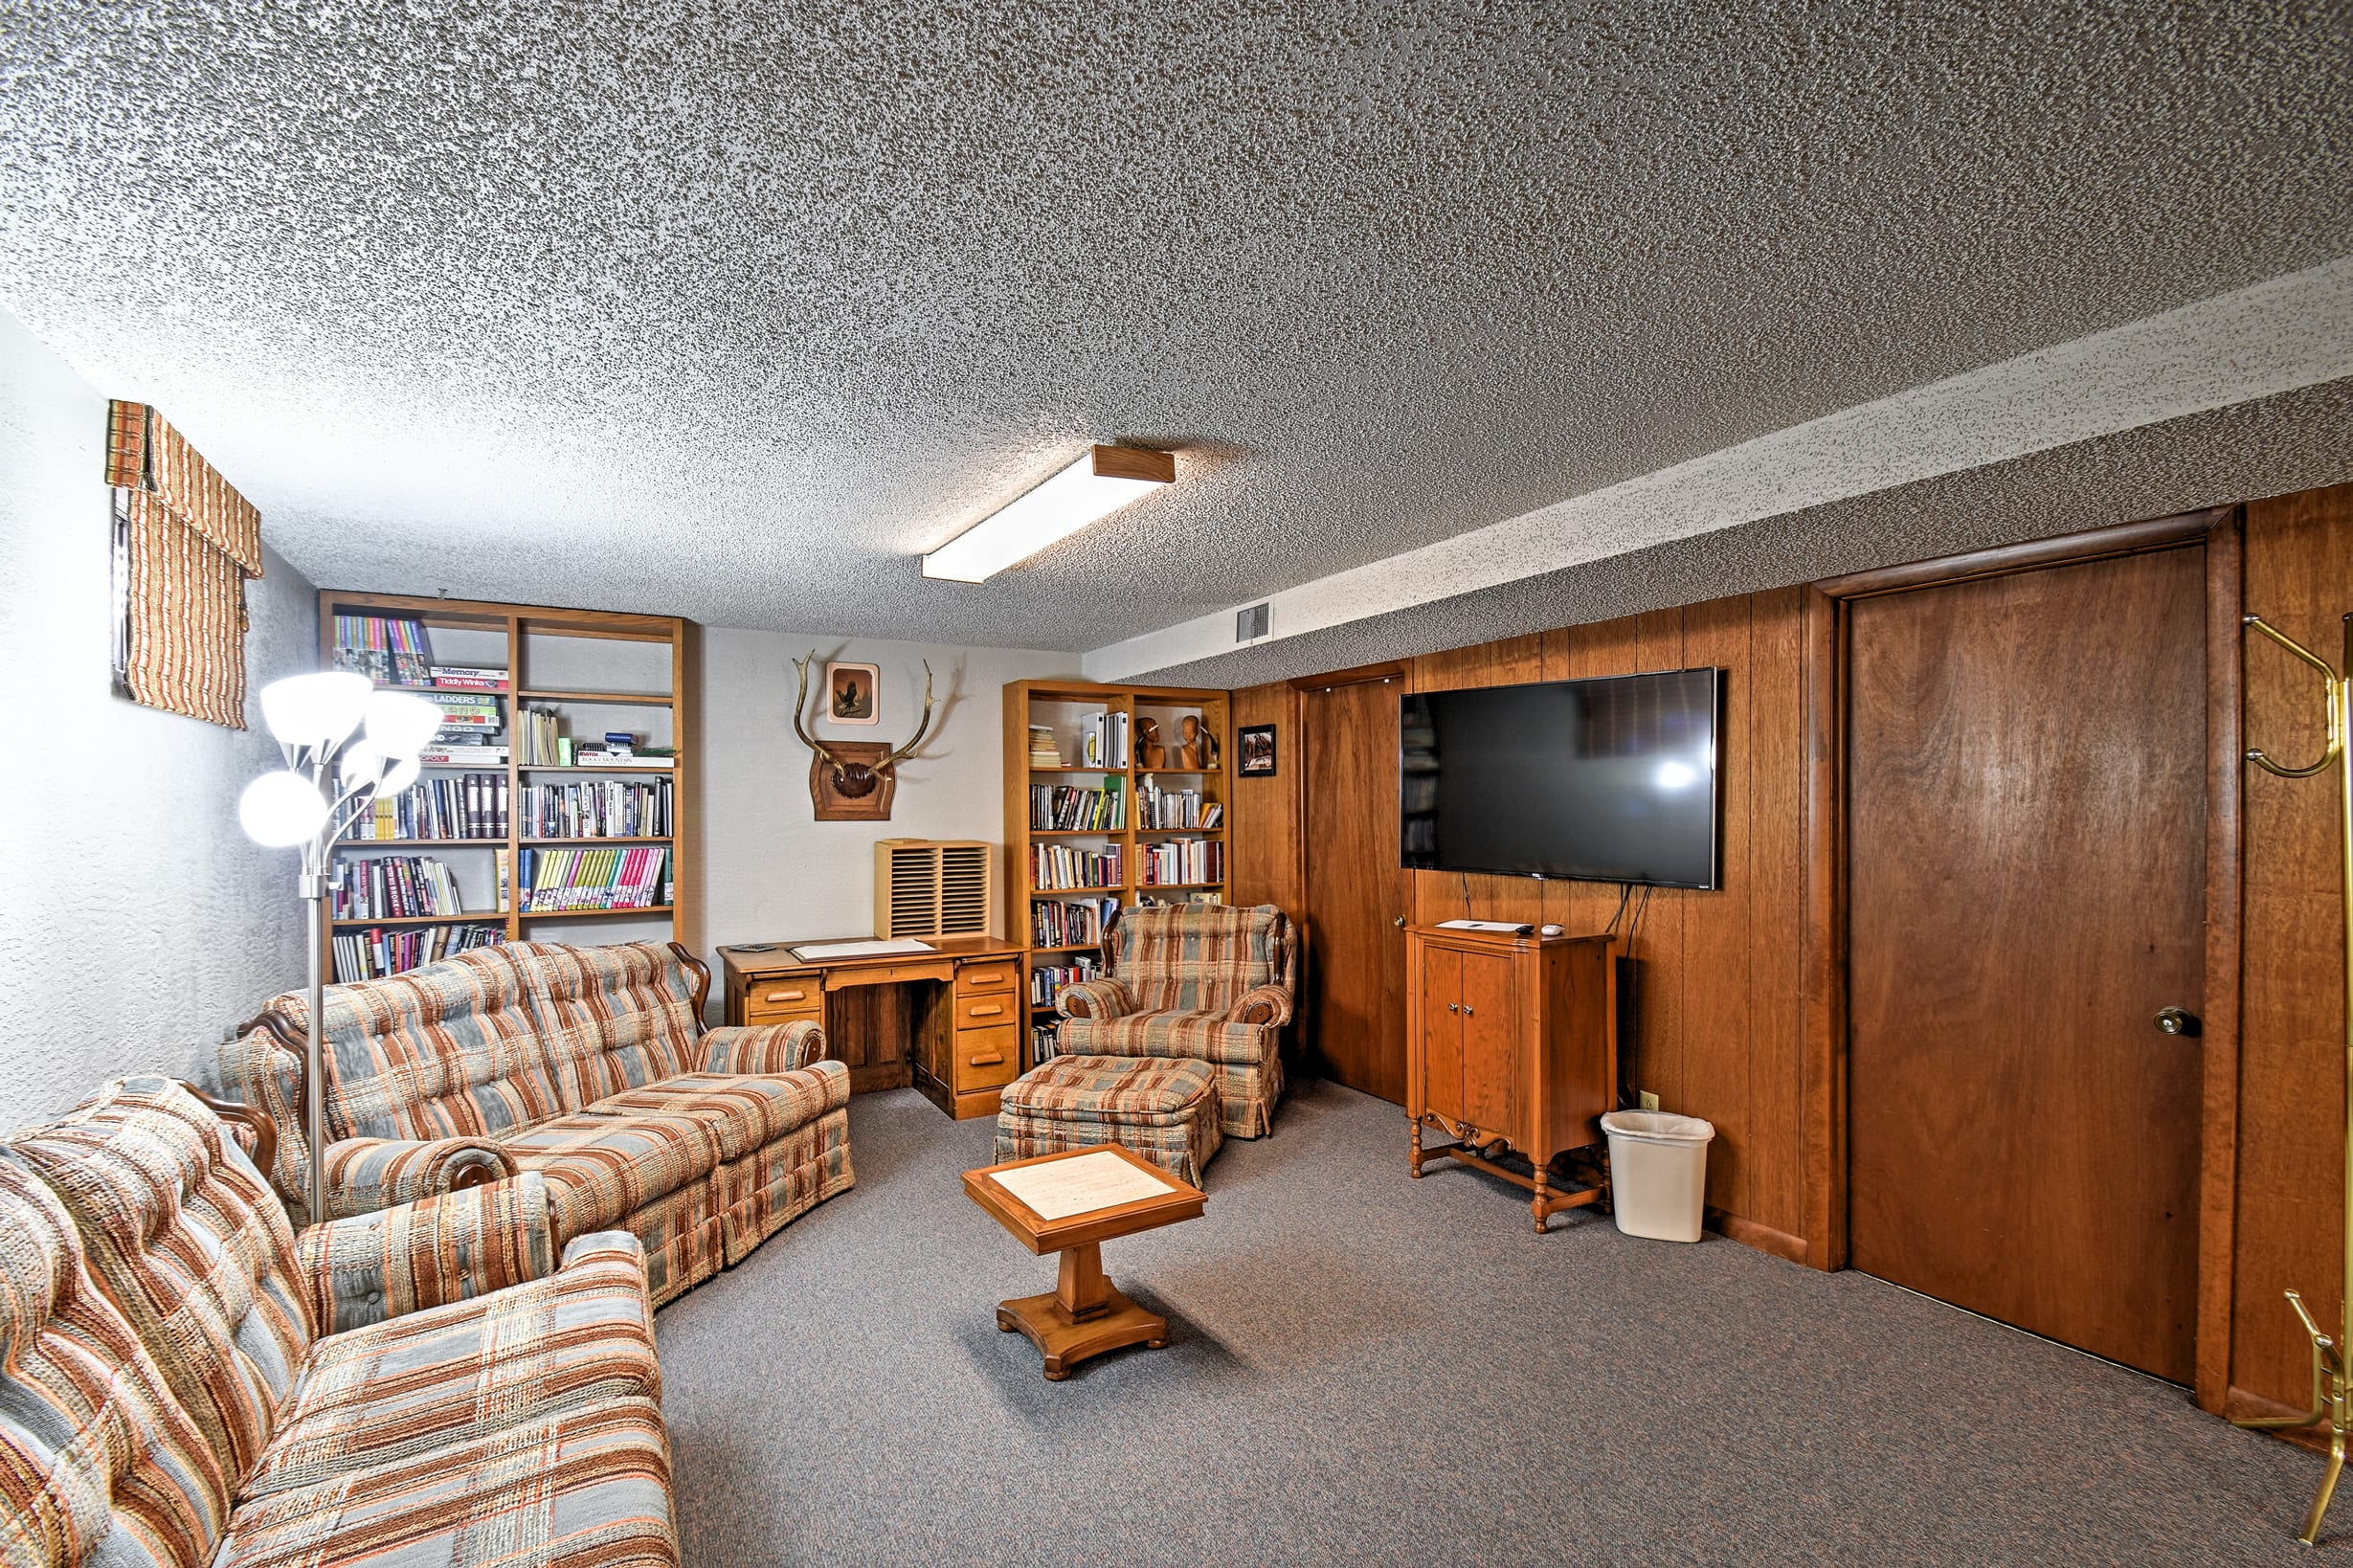 The downstairs recreation room has a TV, couch, books and a ping pong table.